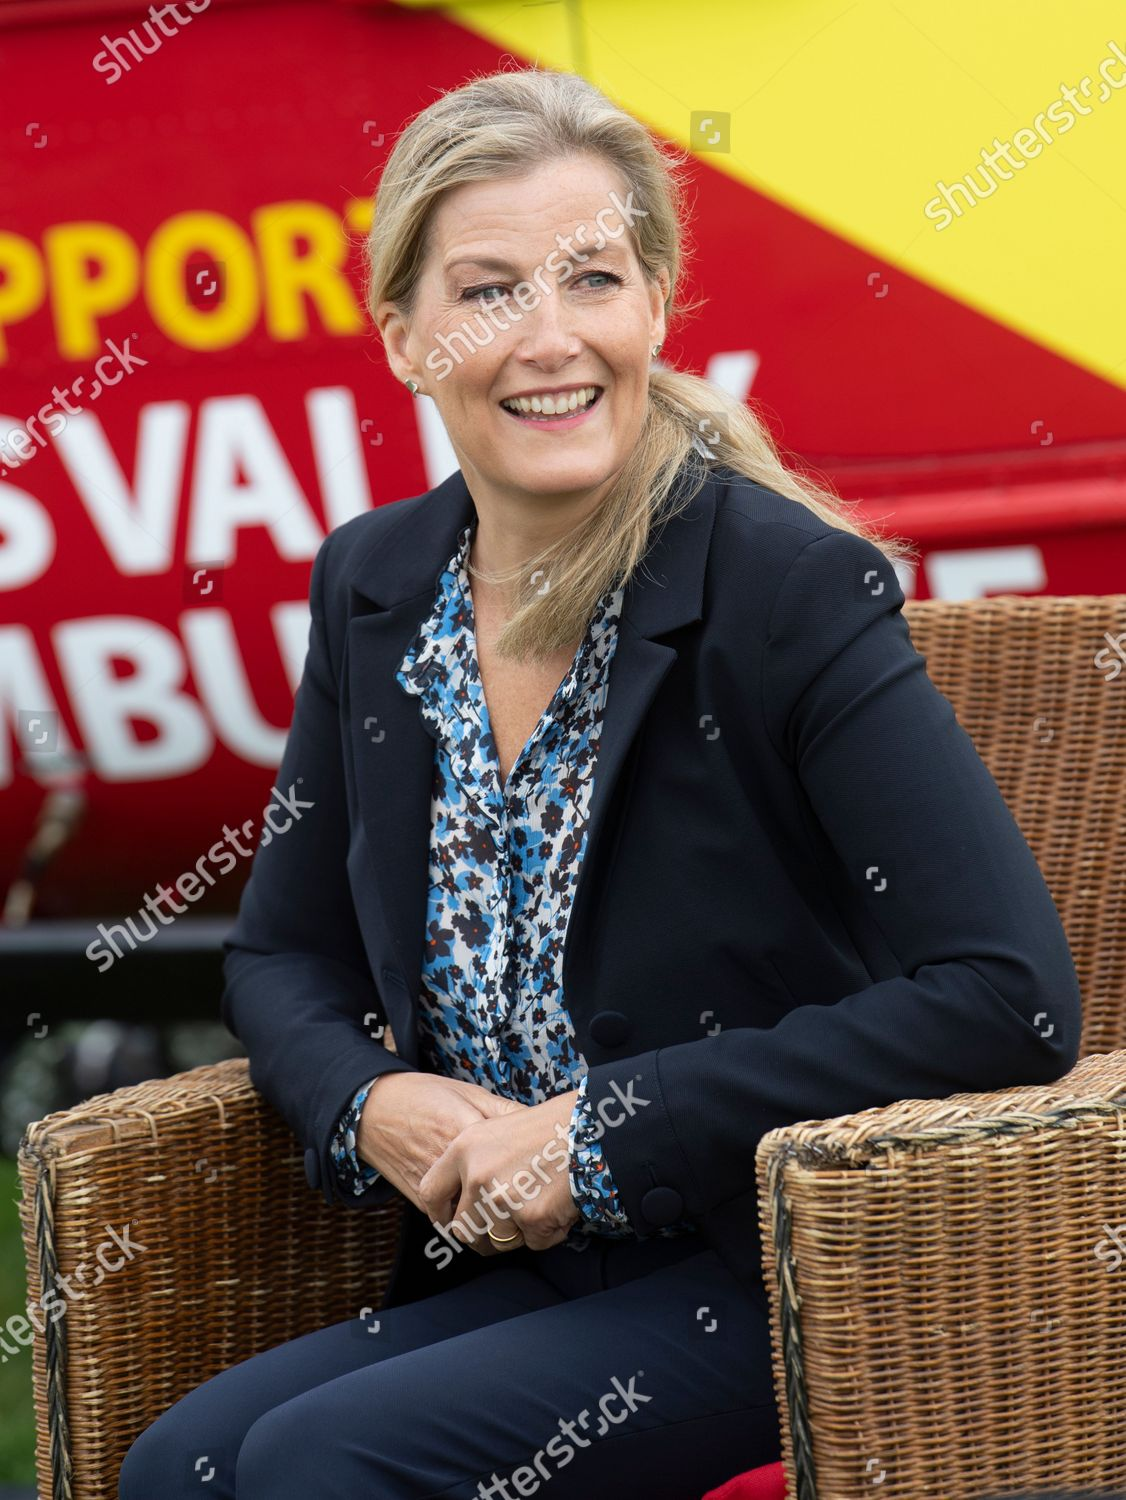 sophie-countess-of-wessex-visit-to-thames-valley-air-ambulance-white-waltham-airfield-maidenhead-uk-shutterstock-editorial-10764511l.jpg